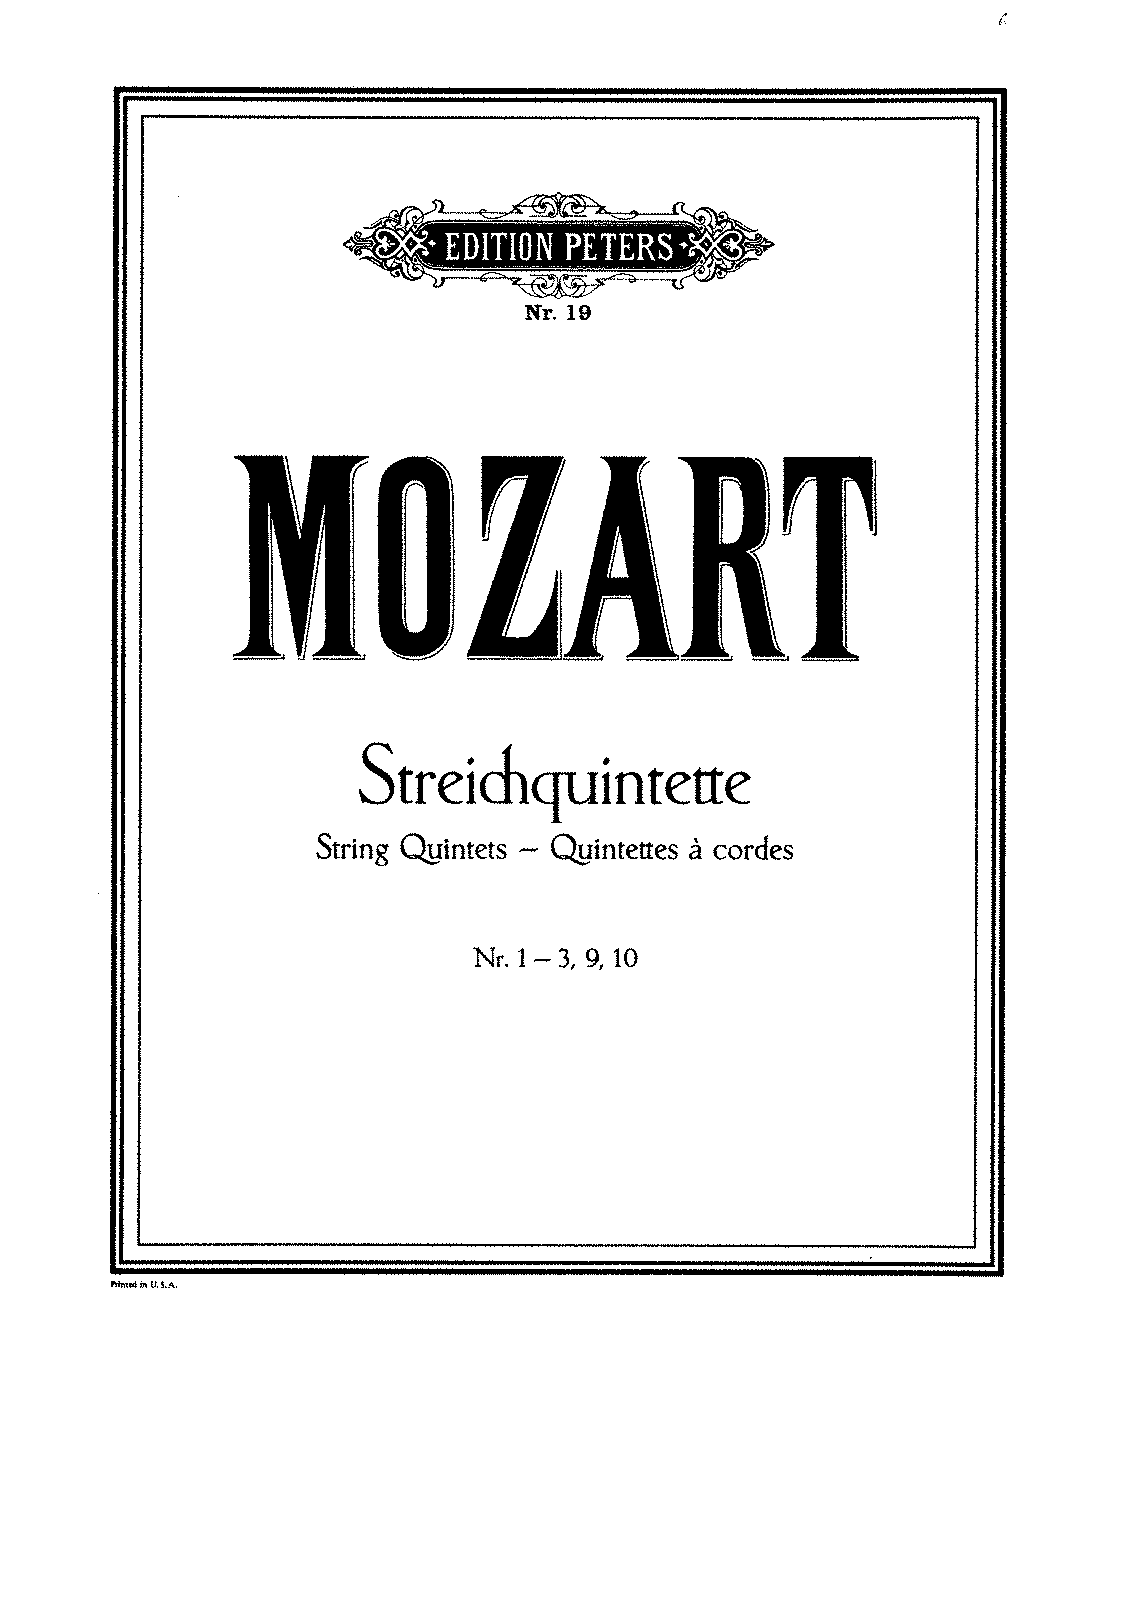 SIBLEY1802.18336.b9f7-39087009222433vol. 2 violin1.pdf